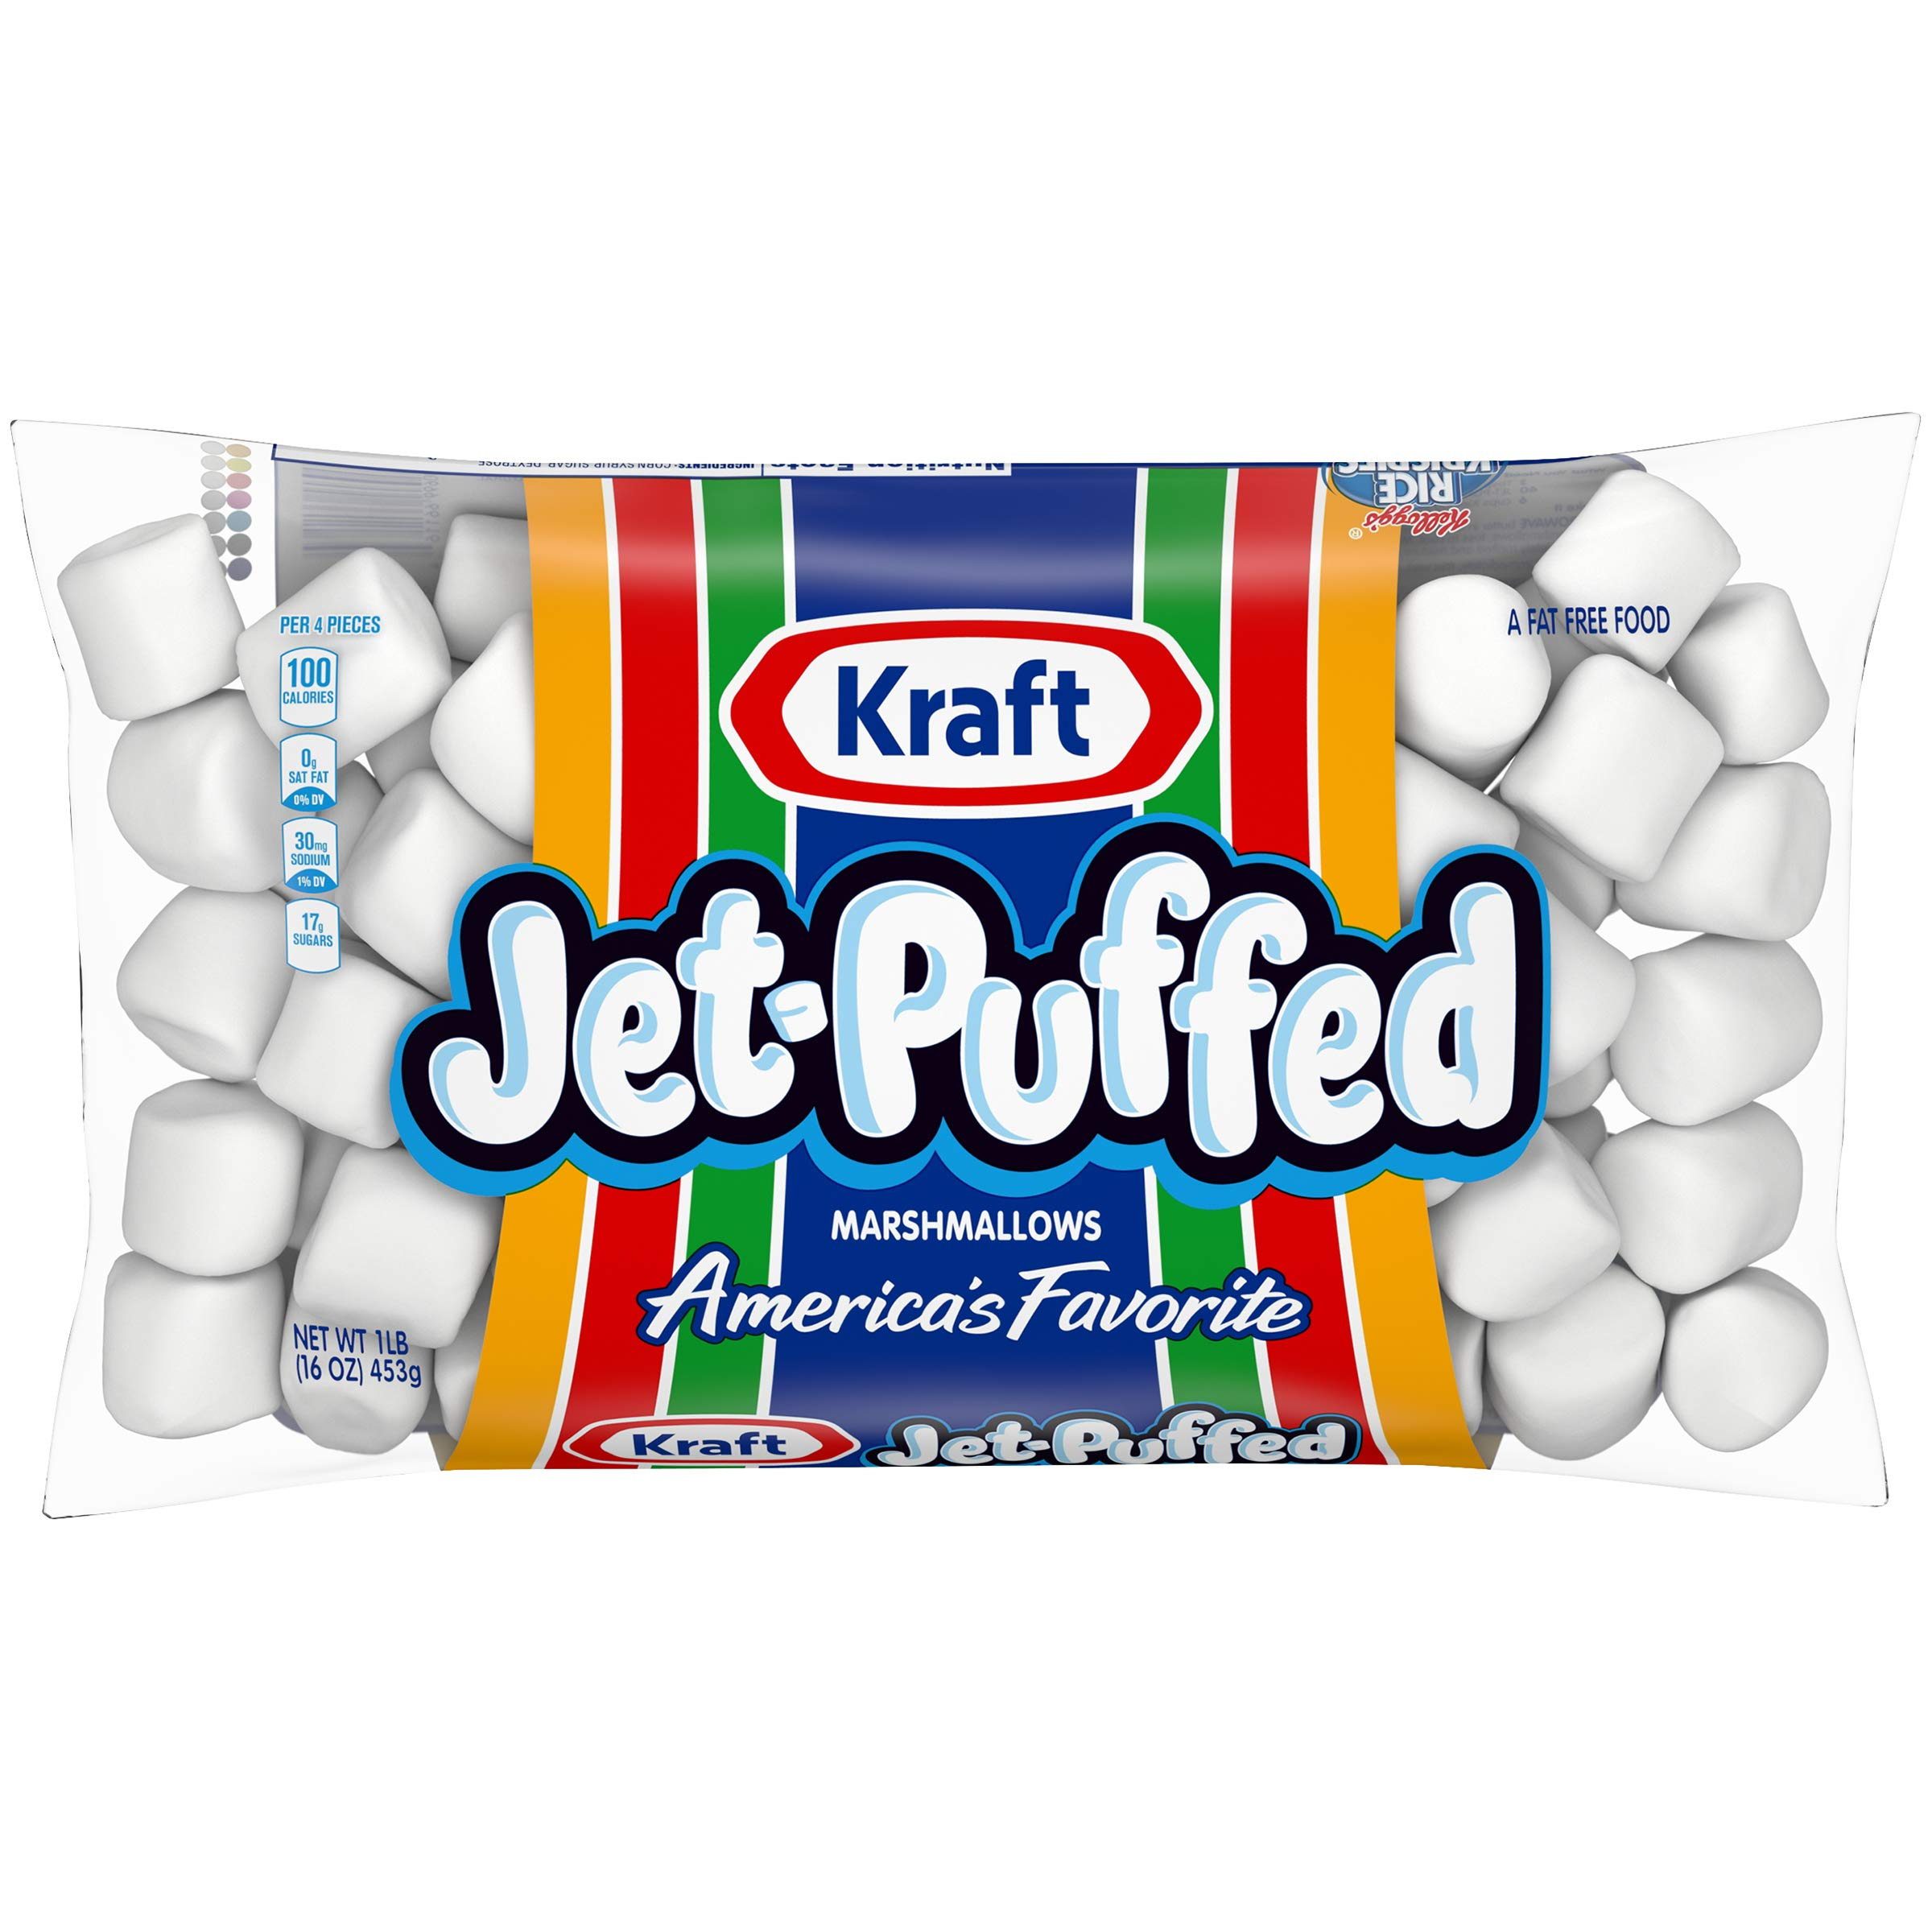 Jet Puffed Marshmallows (16 oz Bag, Pack of 12) by Jet-Puffed